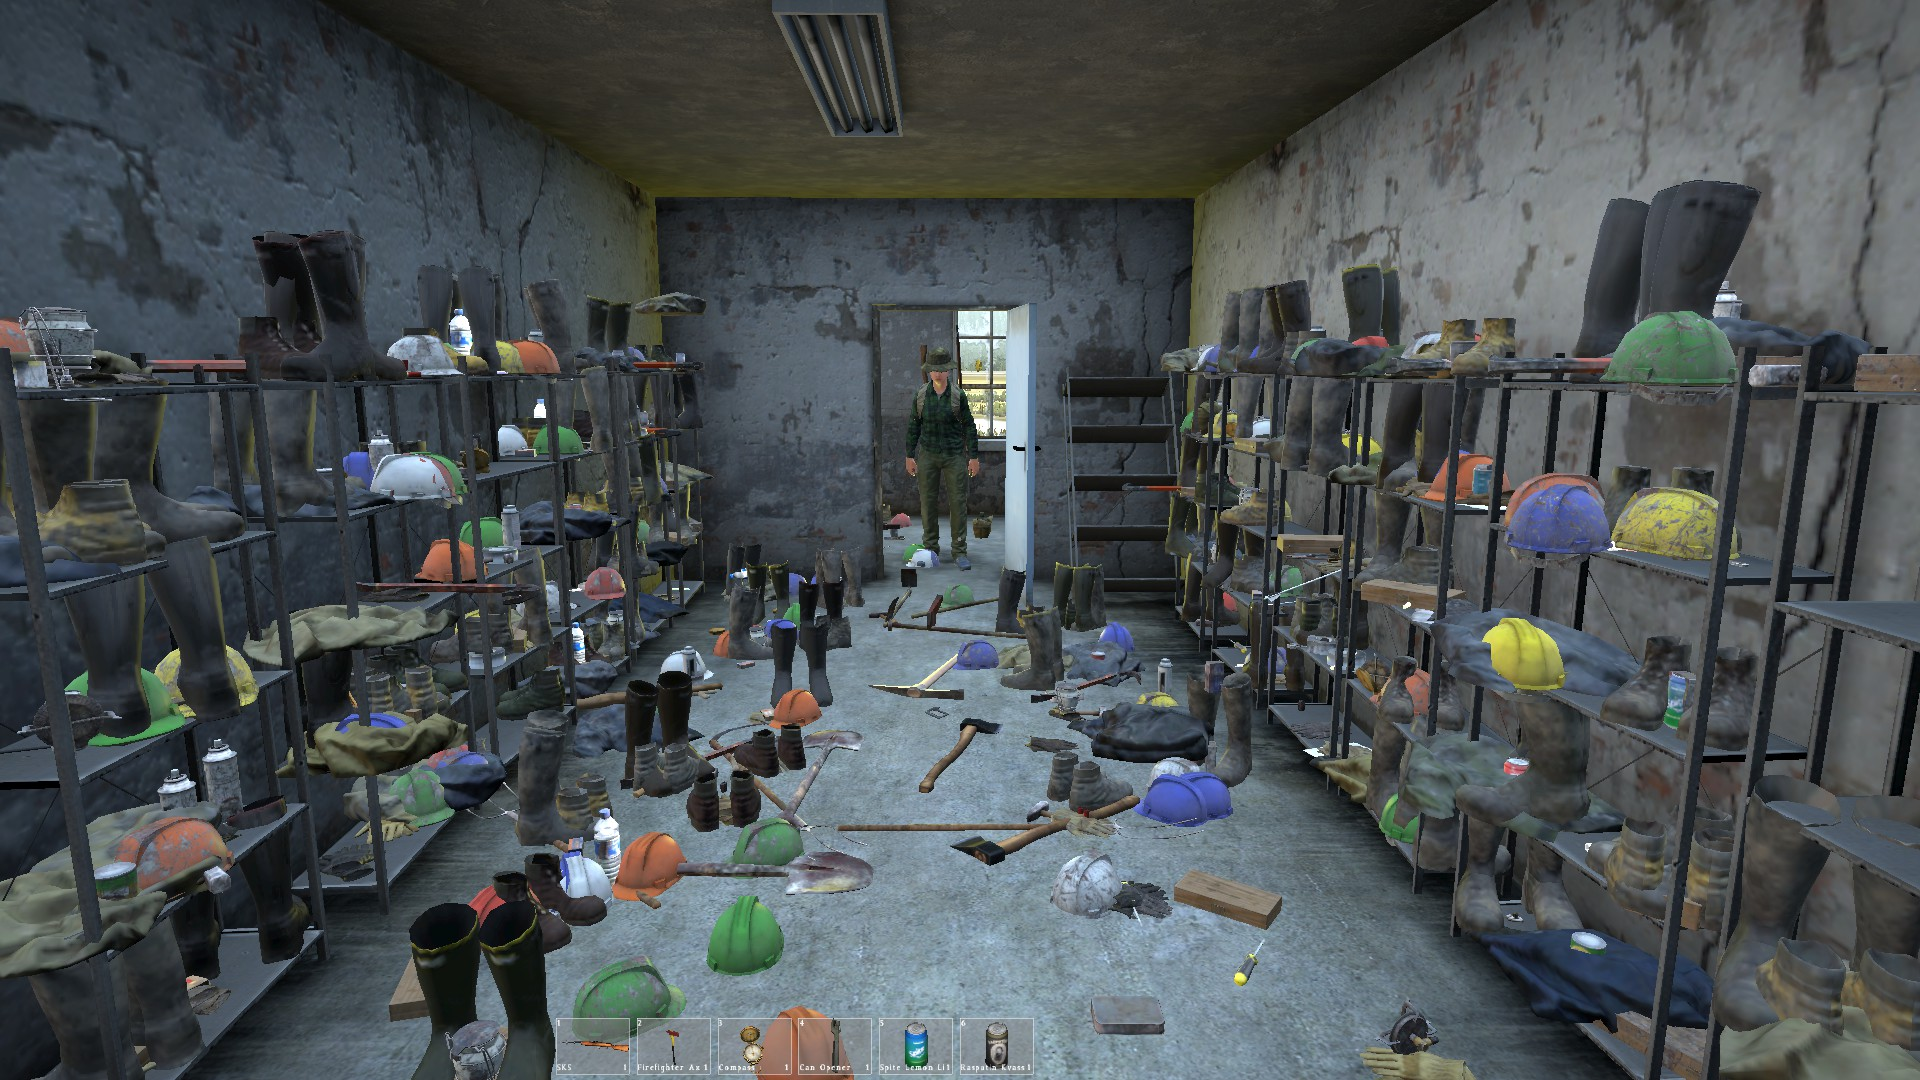 dayz-found-some-loot-in-the-0-49-exp-dayz-standalone